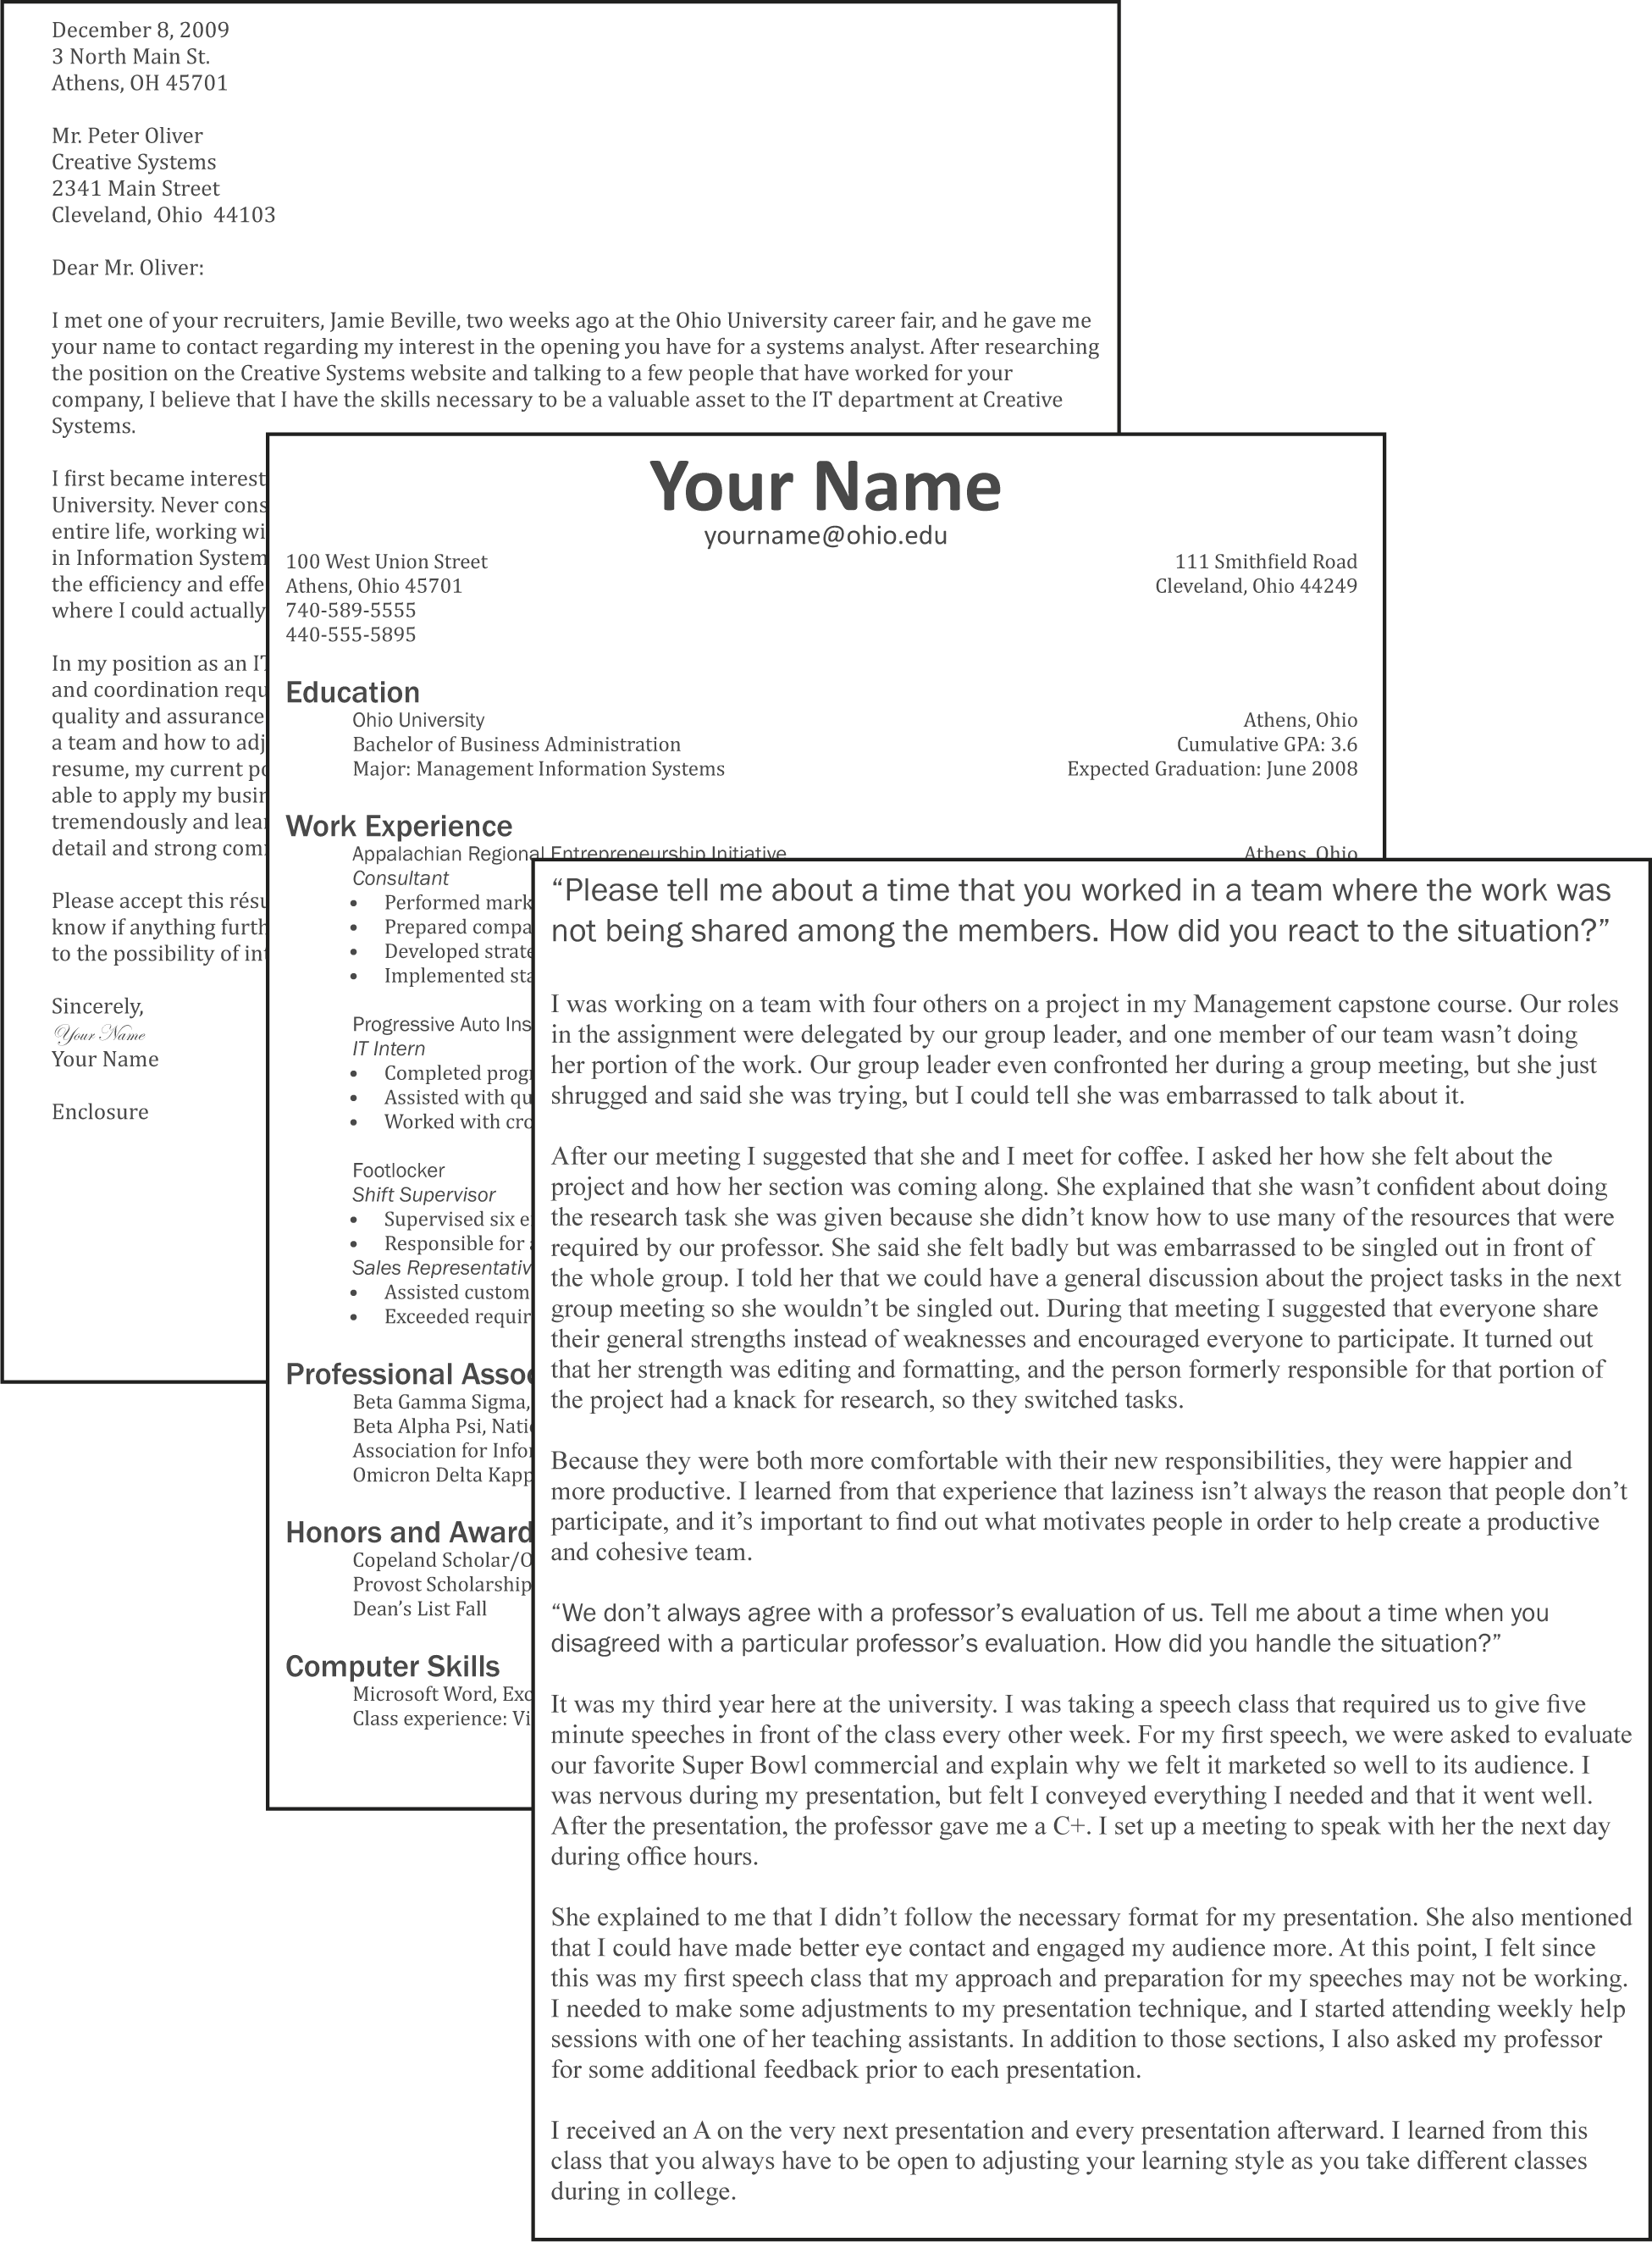 covering letter format for document submission - cover letters resumes interviews